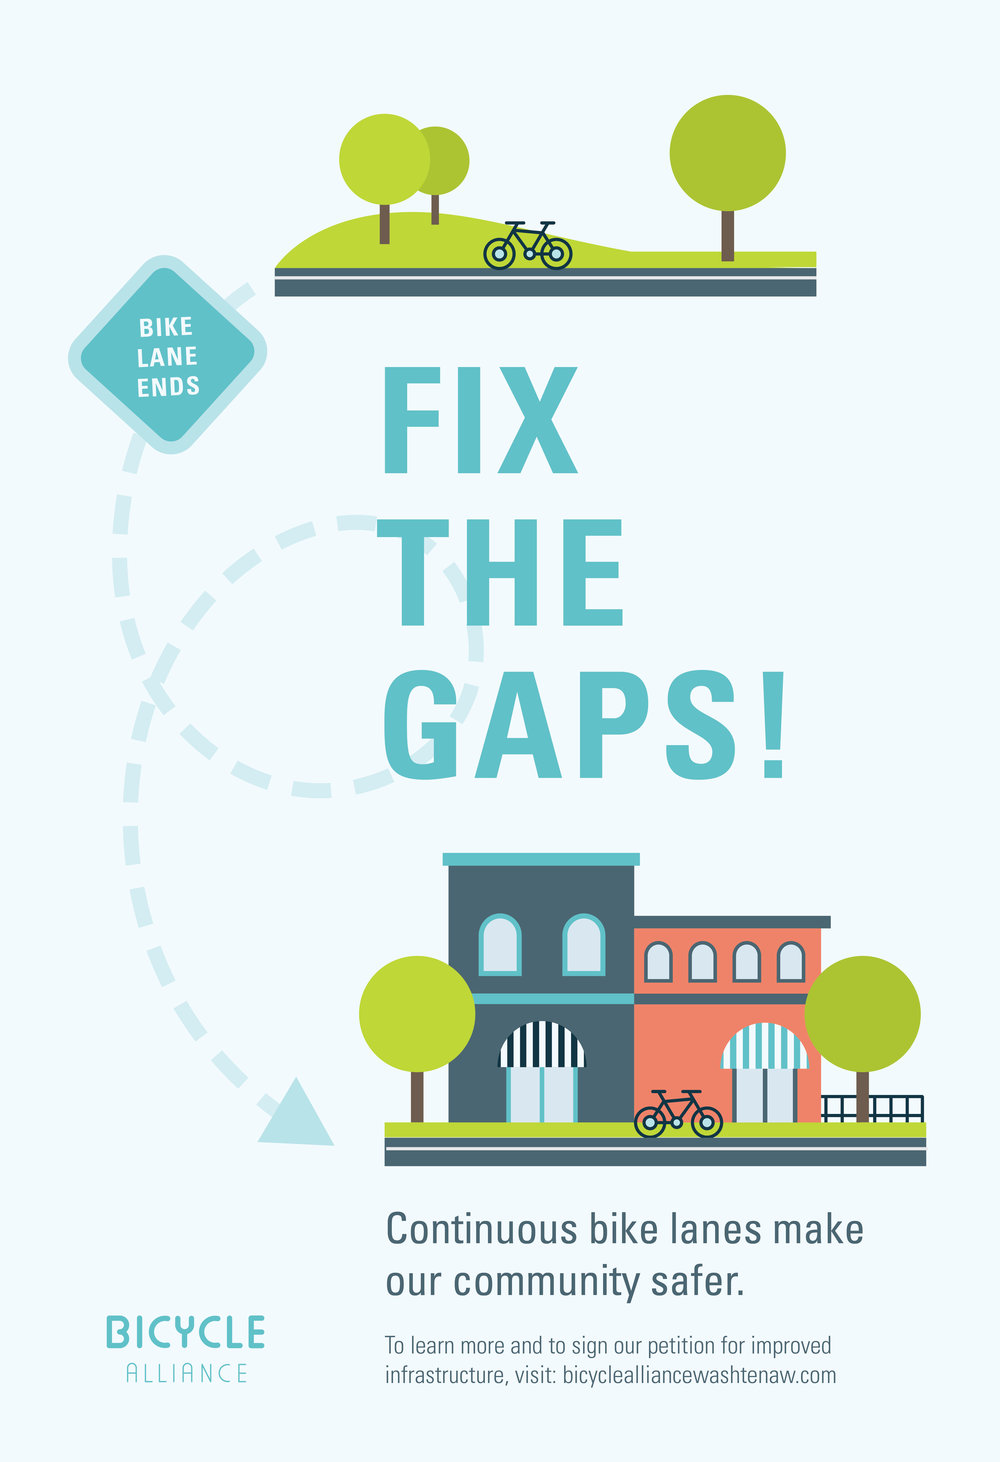 One of the poster concepts, meant to promote policy action to improve bike lane continuity throughout Ann Arbor.